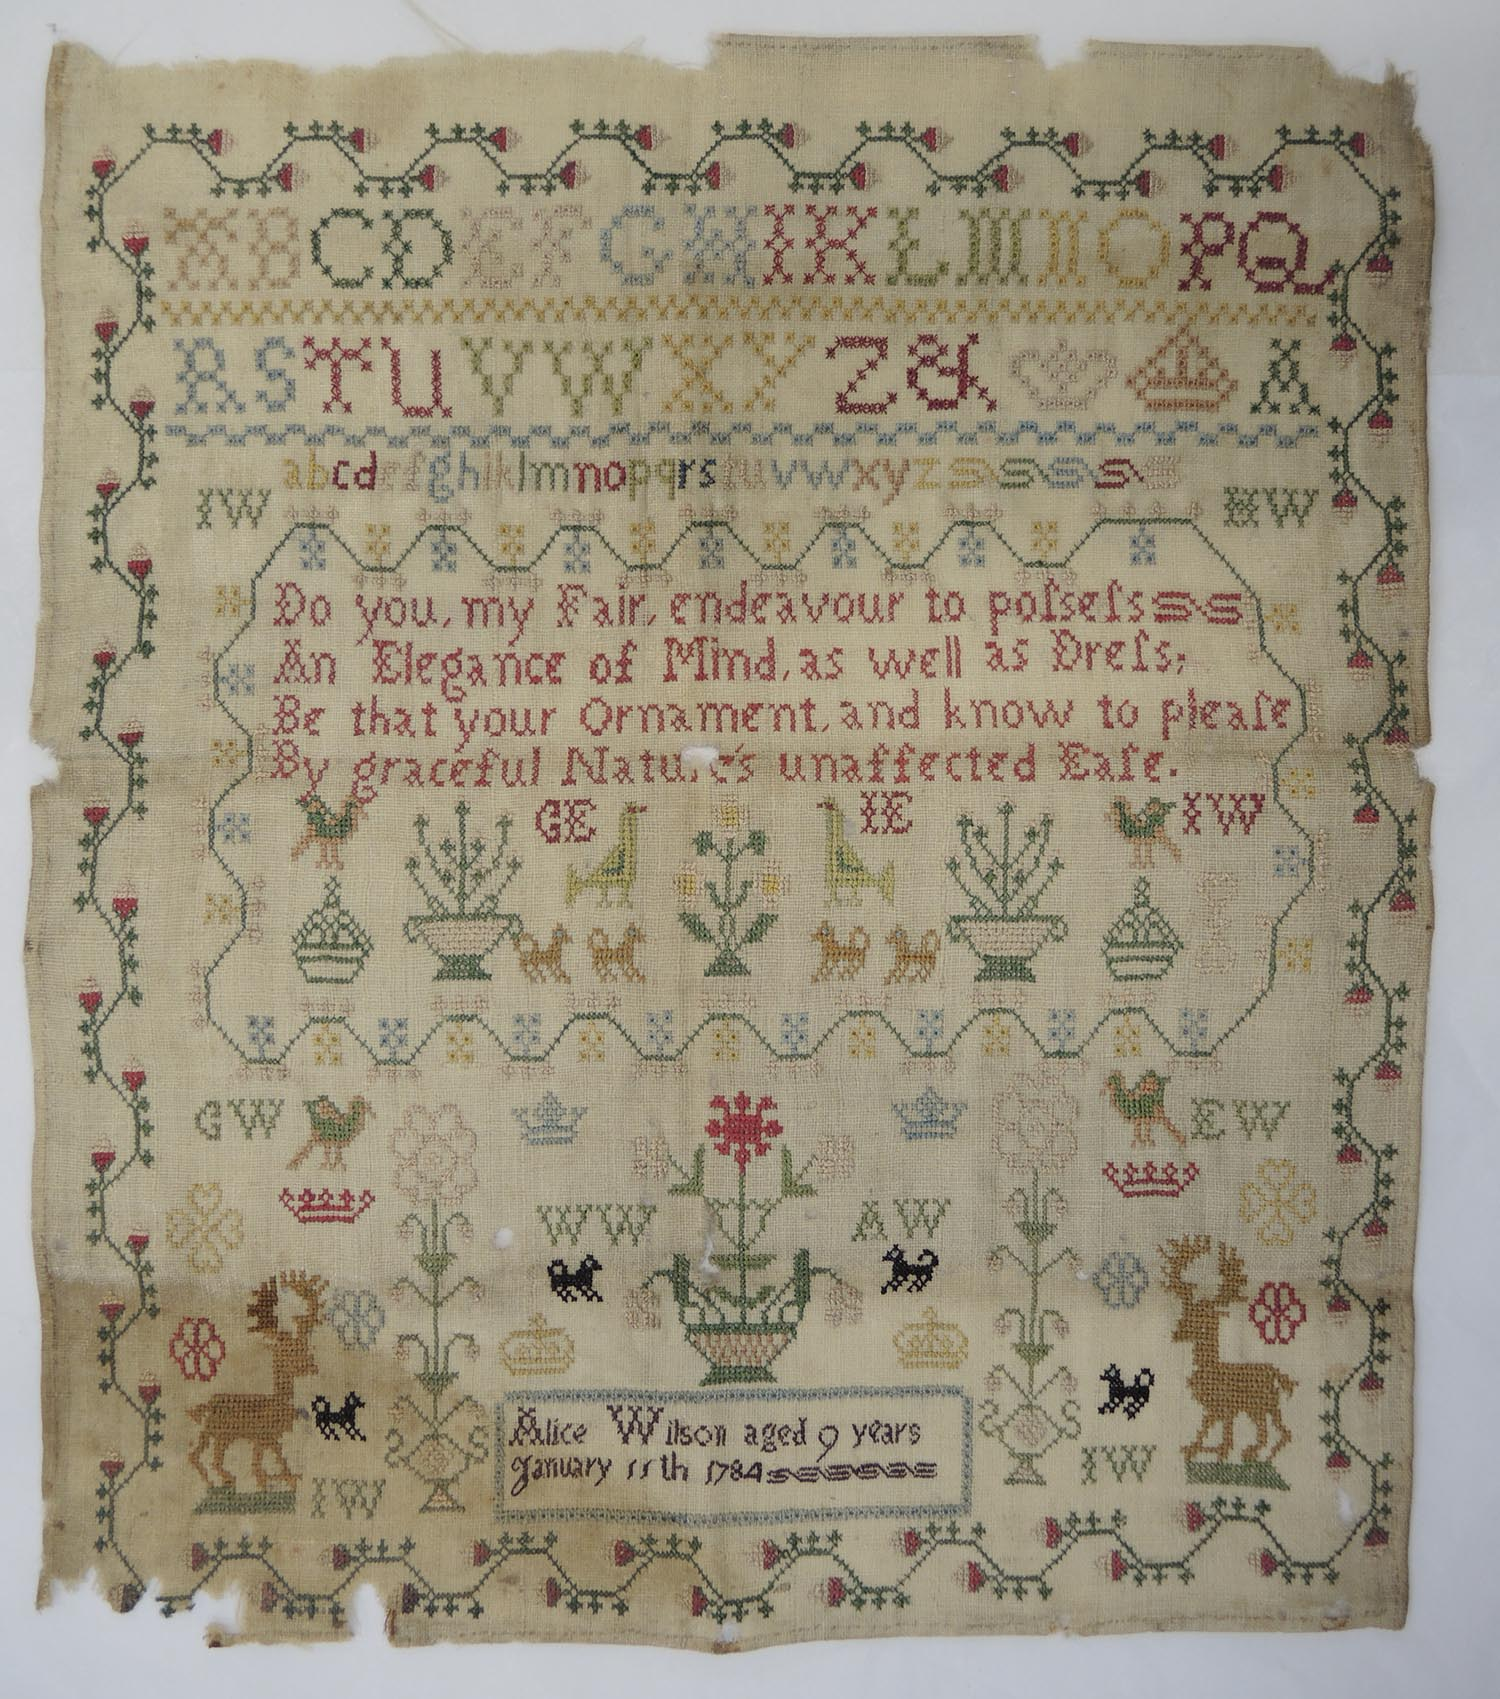 This sampler demonstrates complex condition issues, such as general soiling, staining and areas of loss which are best treated by a textile conservator.